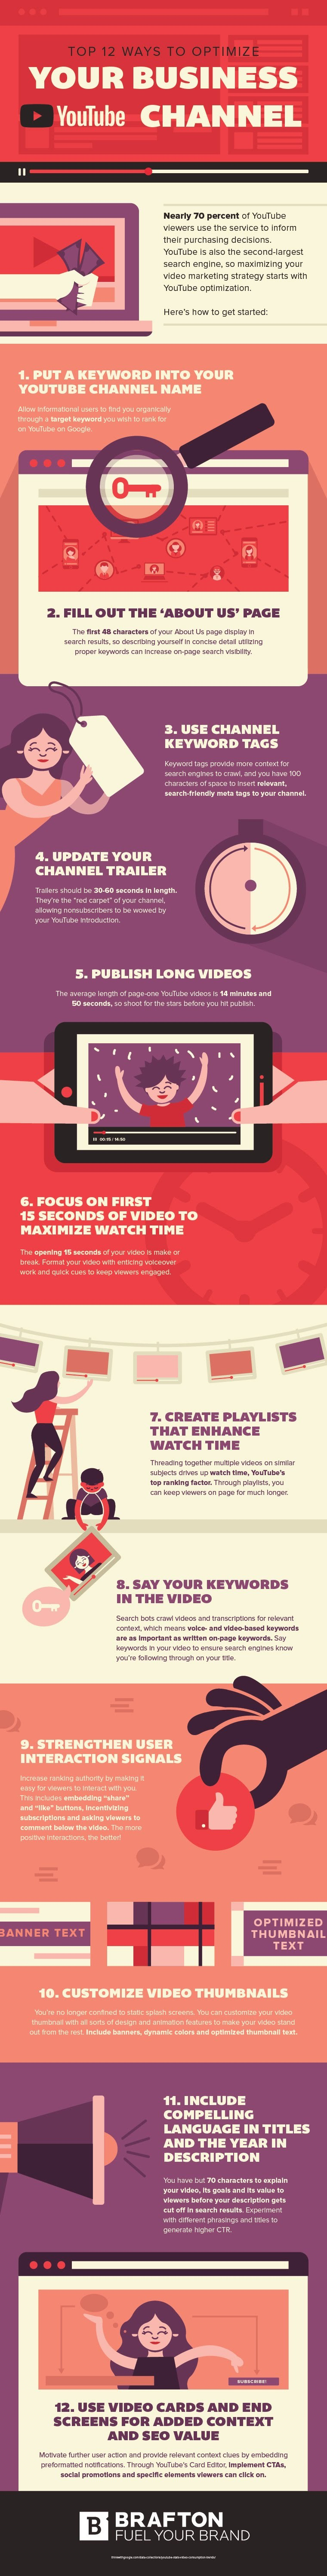 12 Ways to Optimize Your Business YouTube Channel [Infographic] | Social Media Today